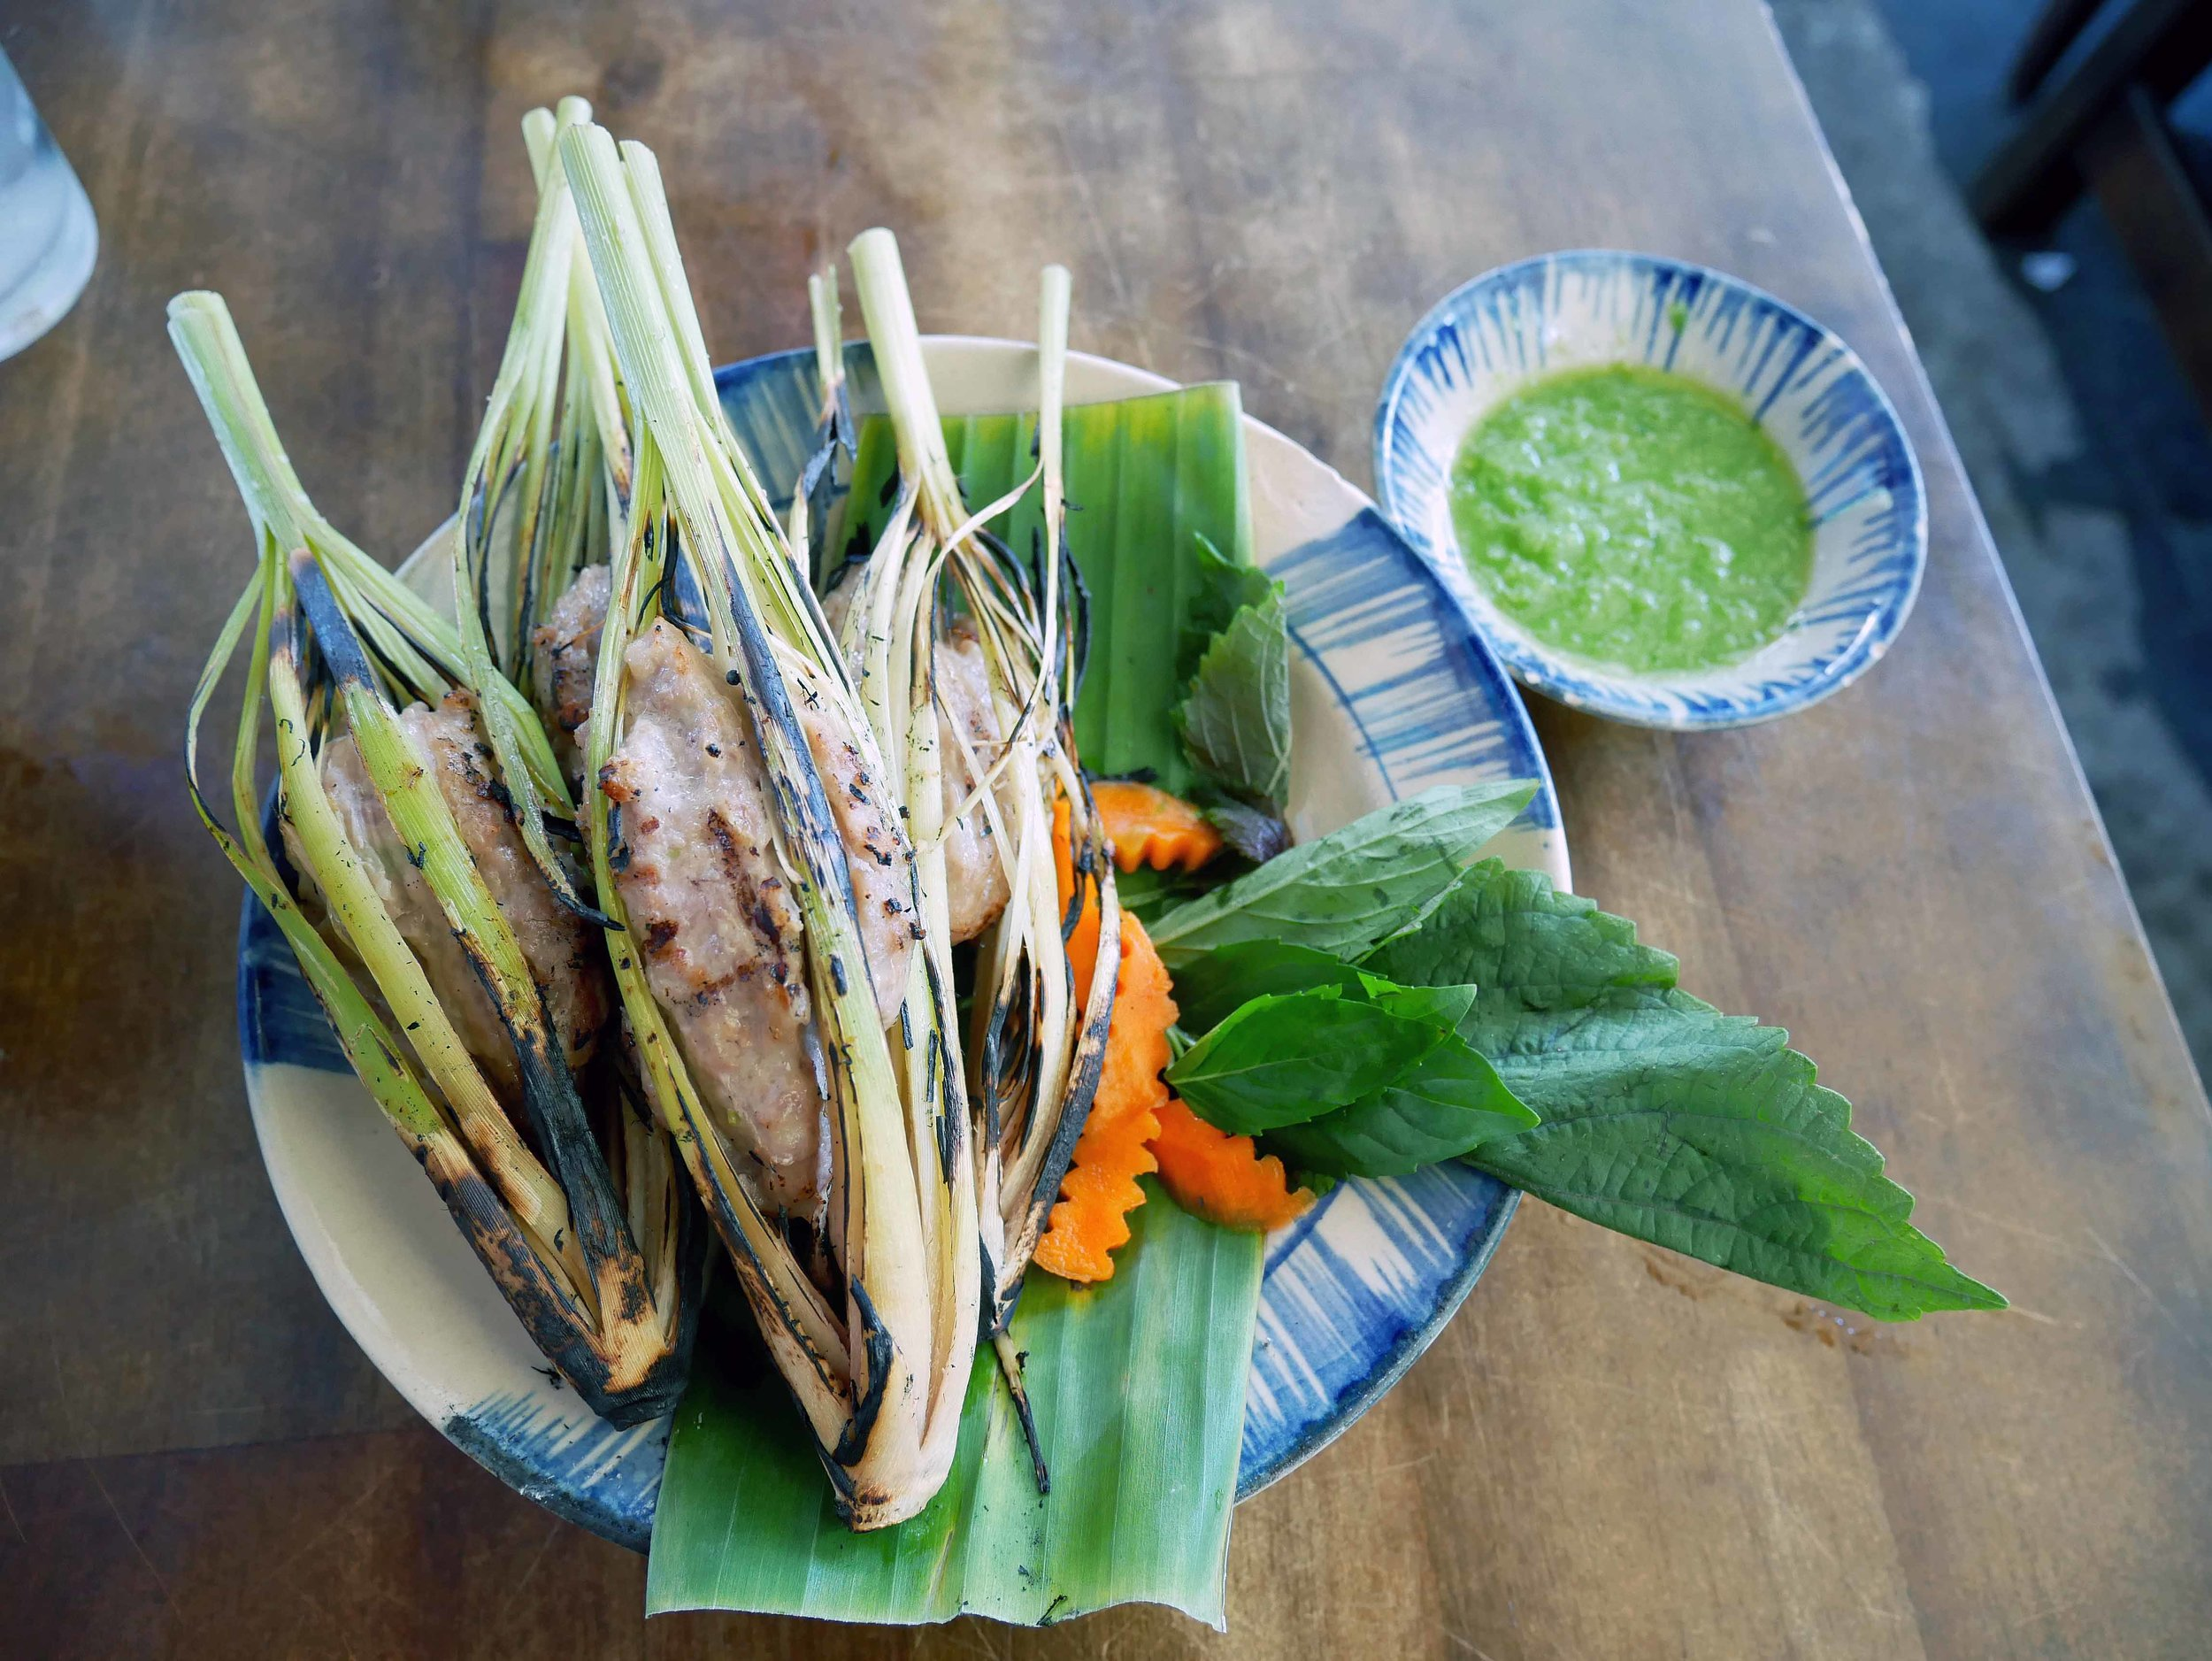 After all that walking, we stopped to refuel on a snack of pork grilled in lemongrass.